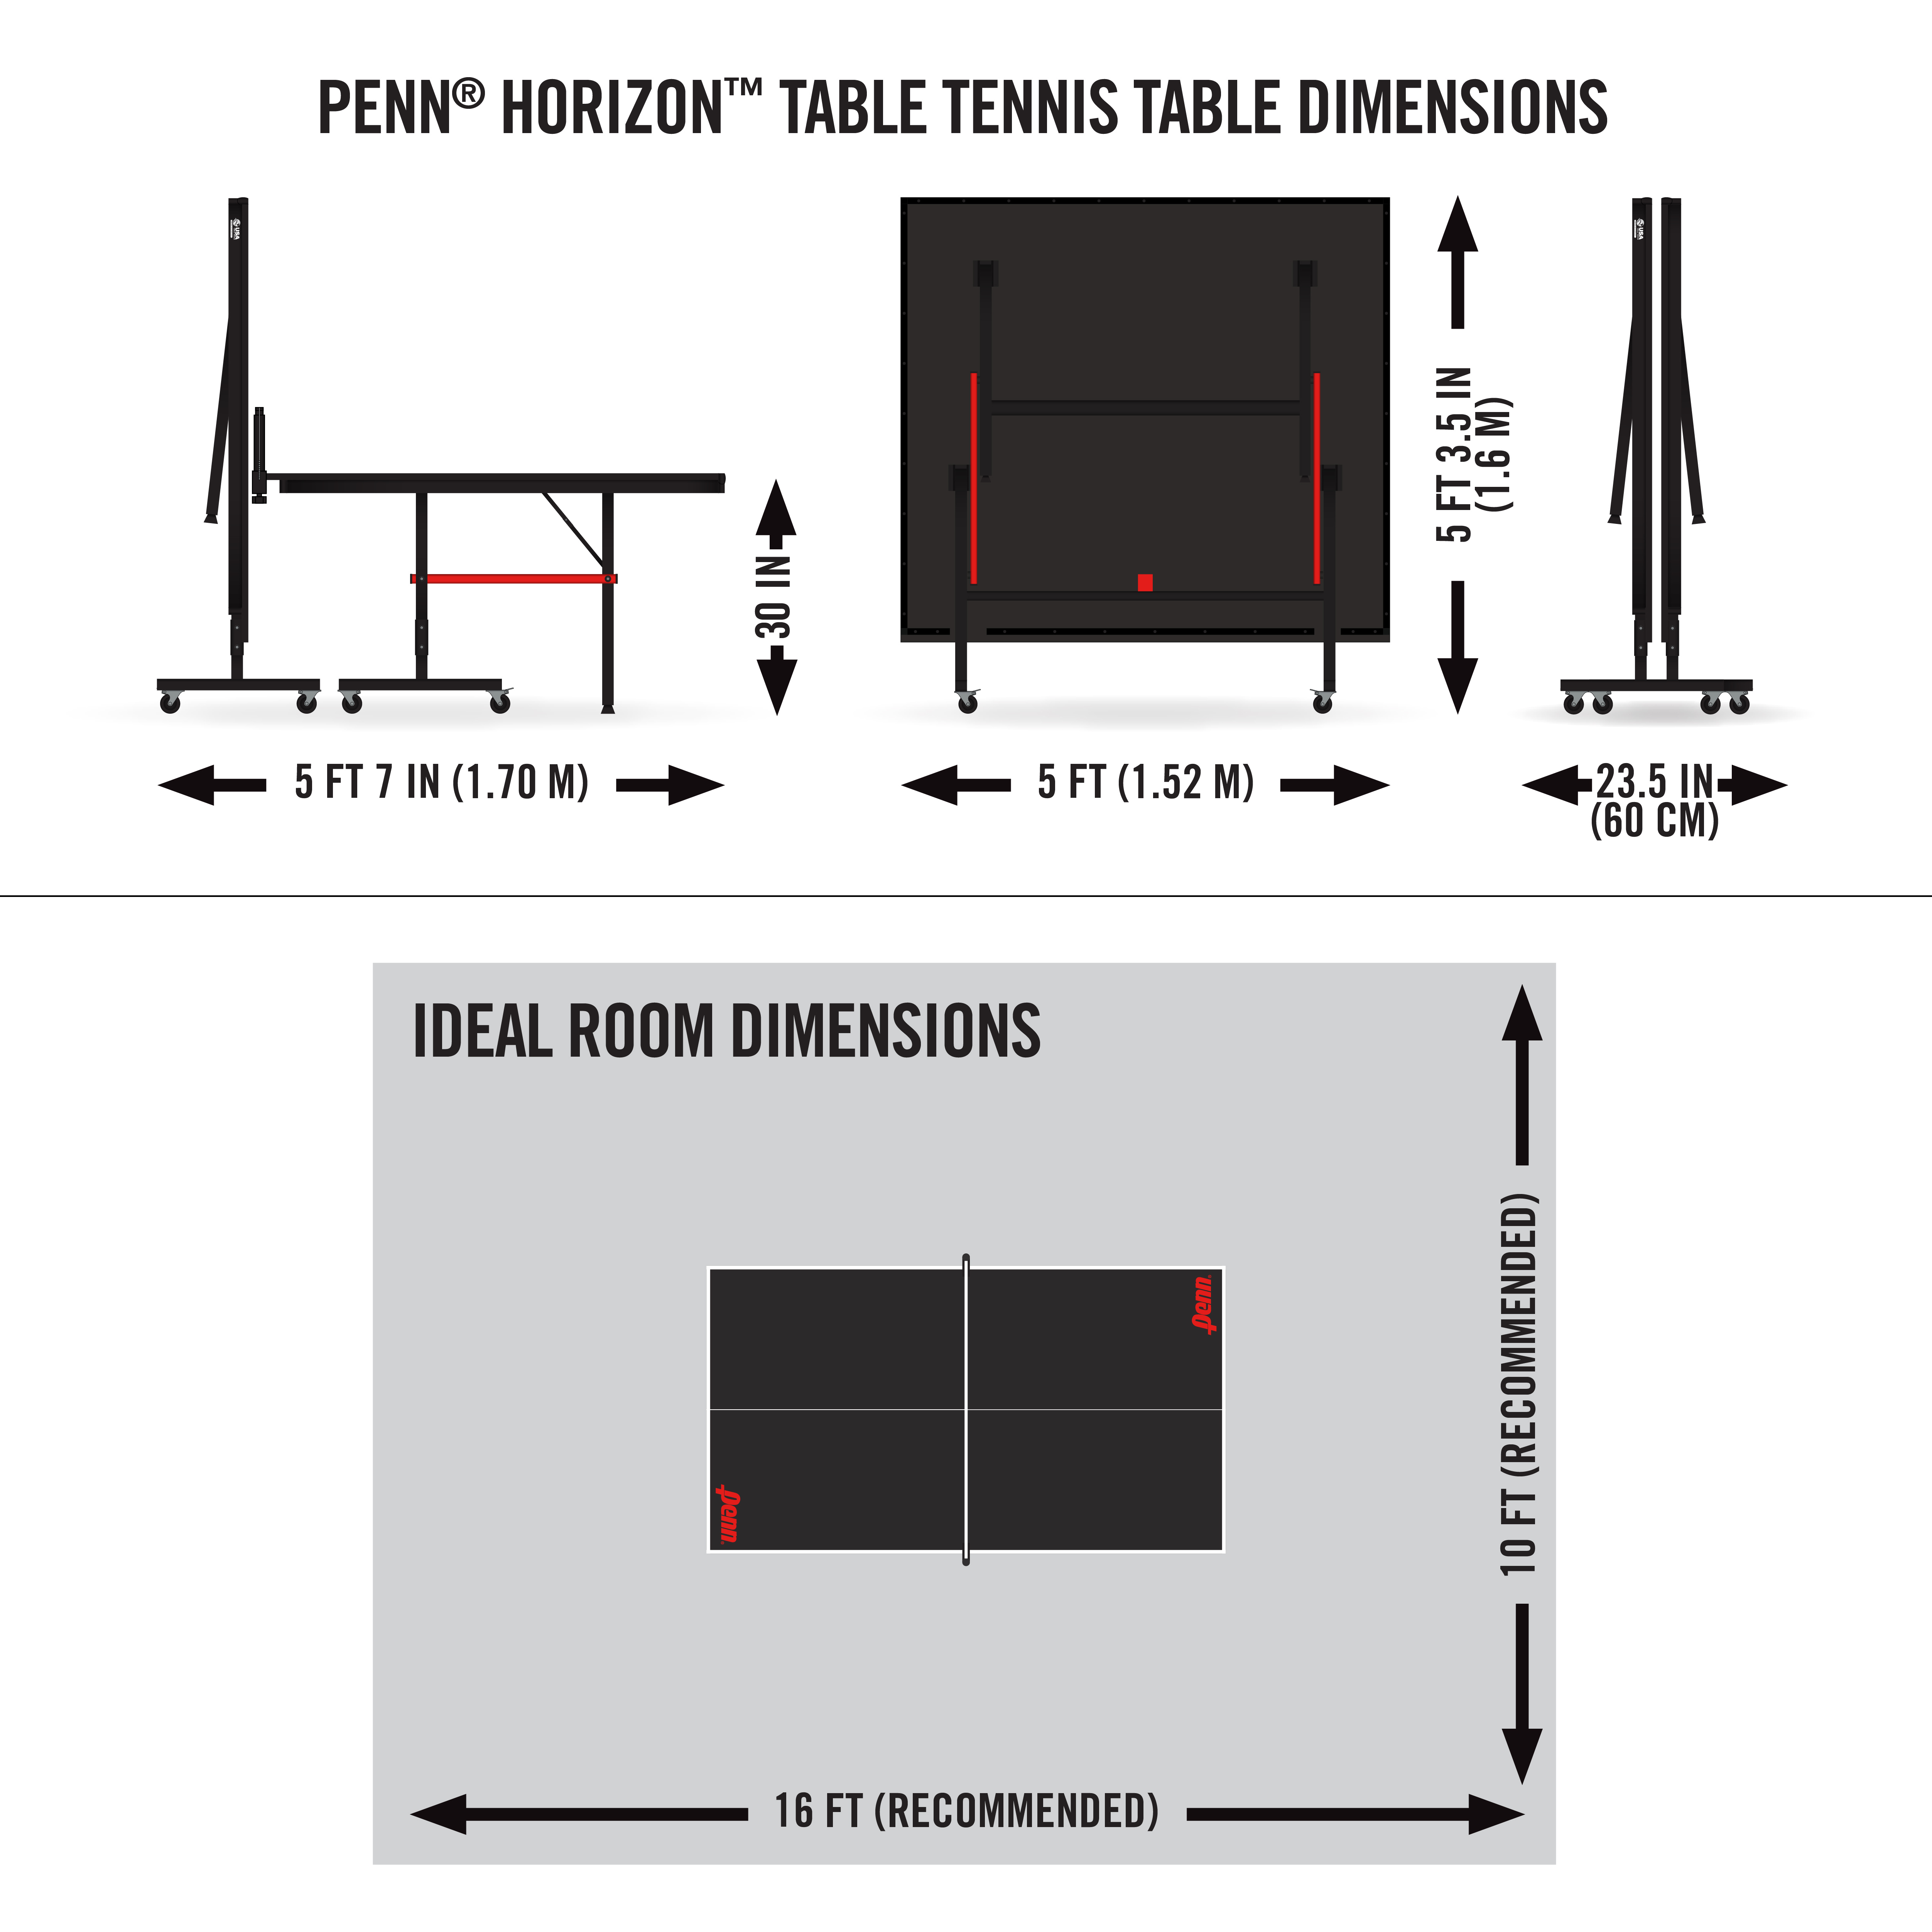 Groovy Penn Horizon Tournament Size Table Tennis Table Download Free Architecture Designs Embacsunscenecom